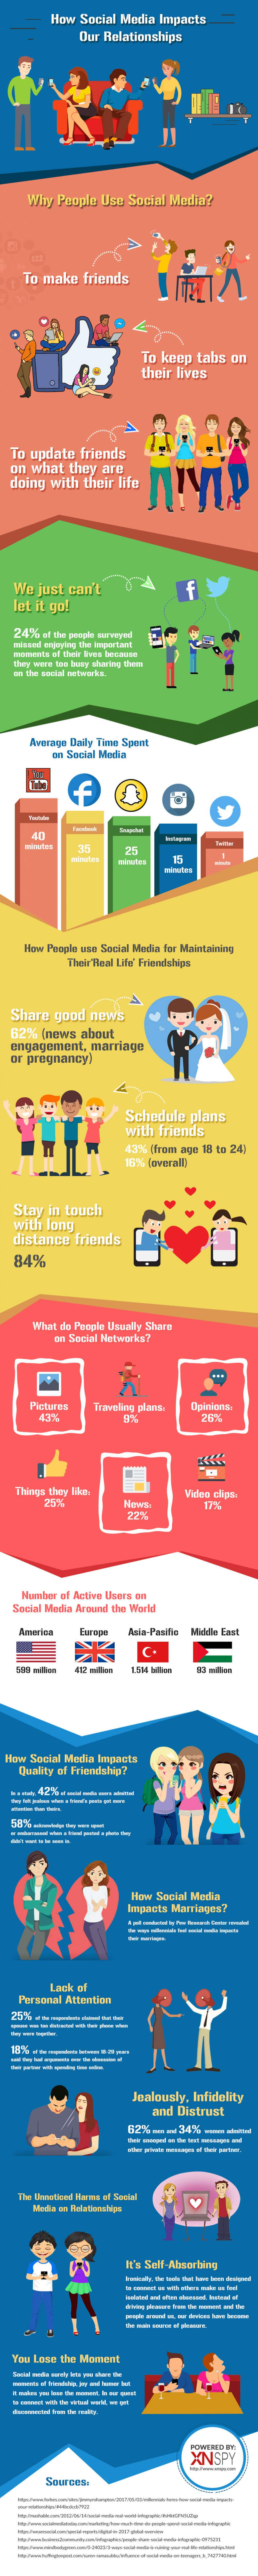 How Social Media Impacts Our Relationships